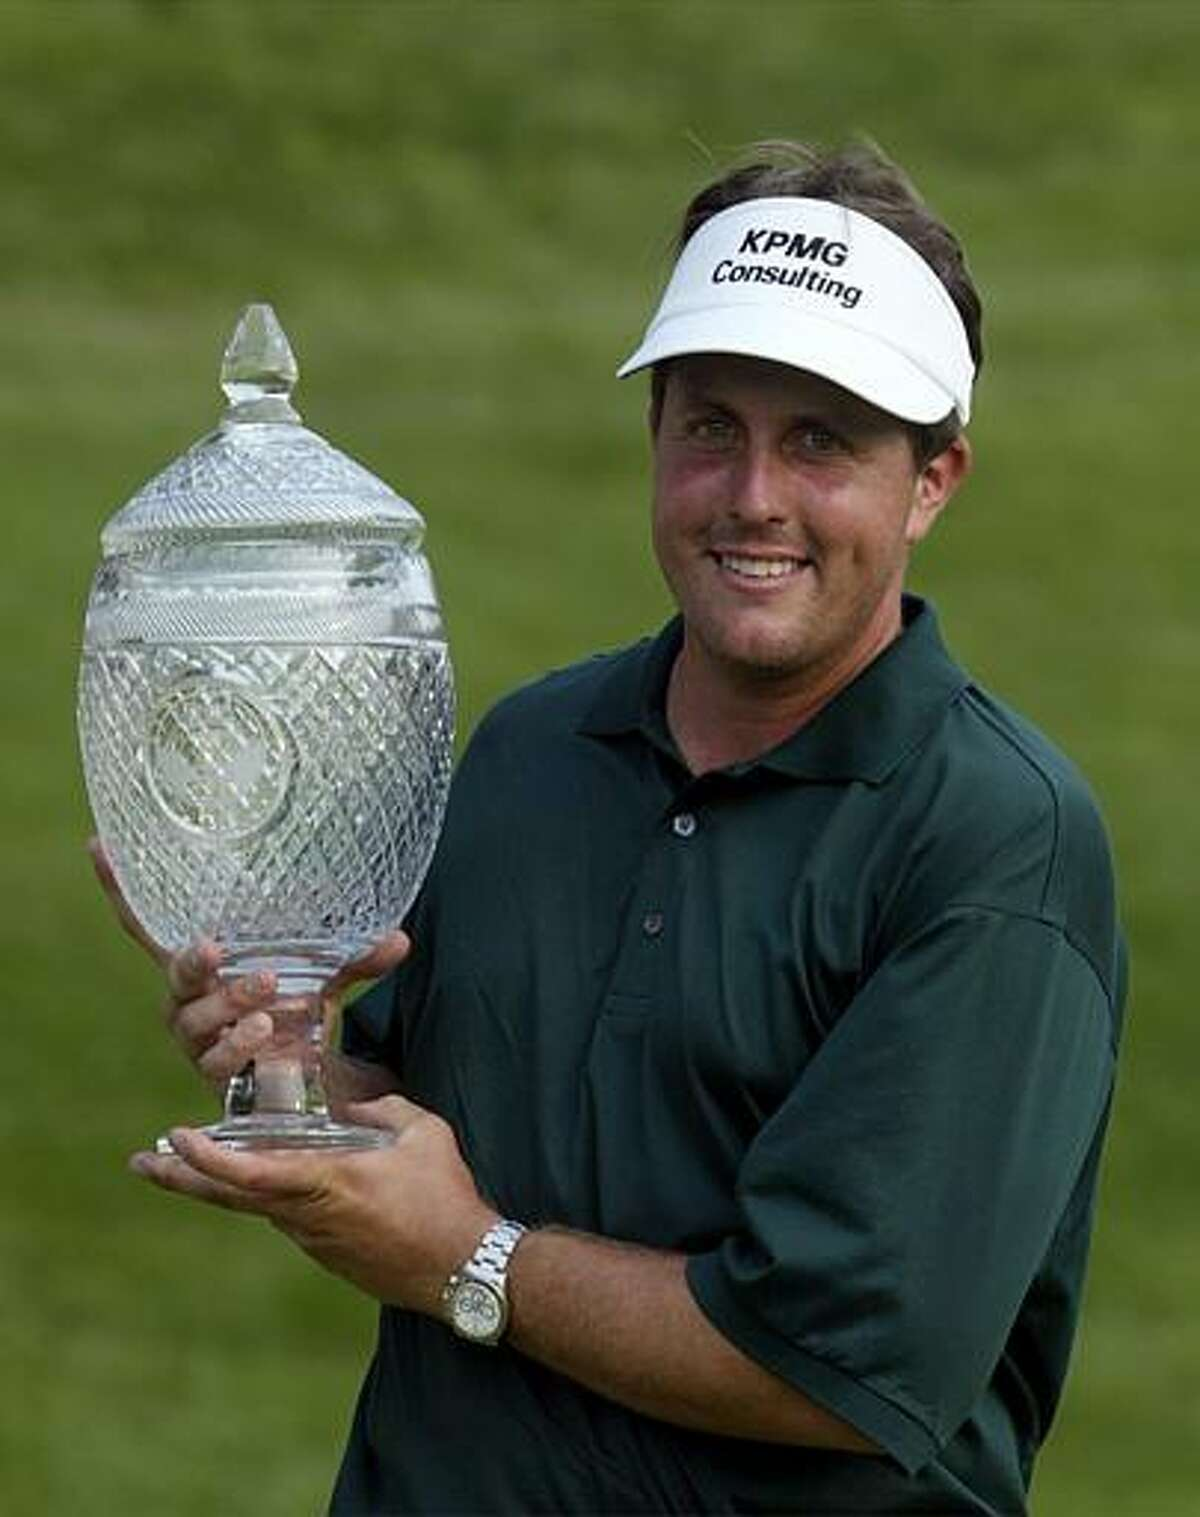 Phil Mickelson hasn't been to Cromwell since 2003 but he hasn't ruled out a return, thanks to the persistence of tournament director Nathan Grube and the organizers of the Travelers Championship. (AP)